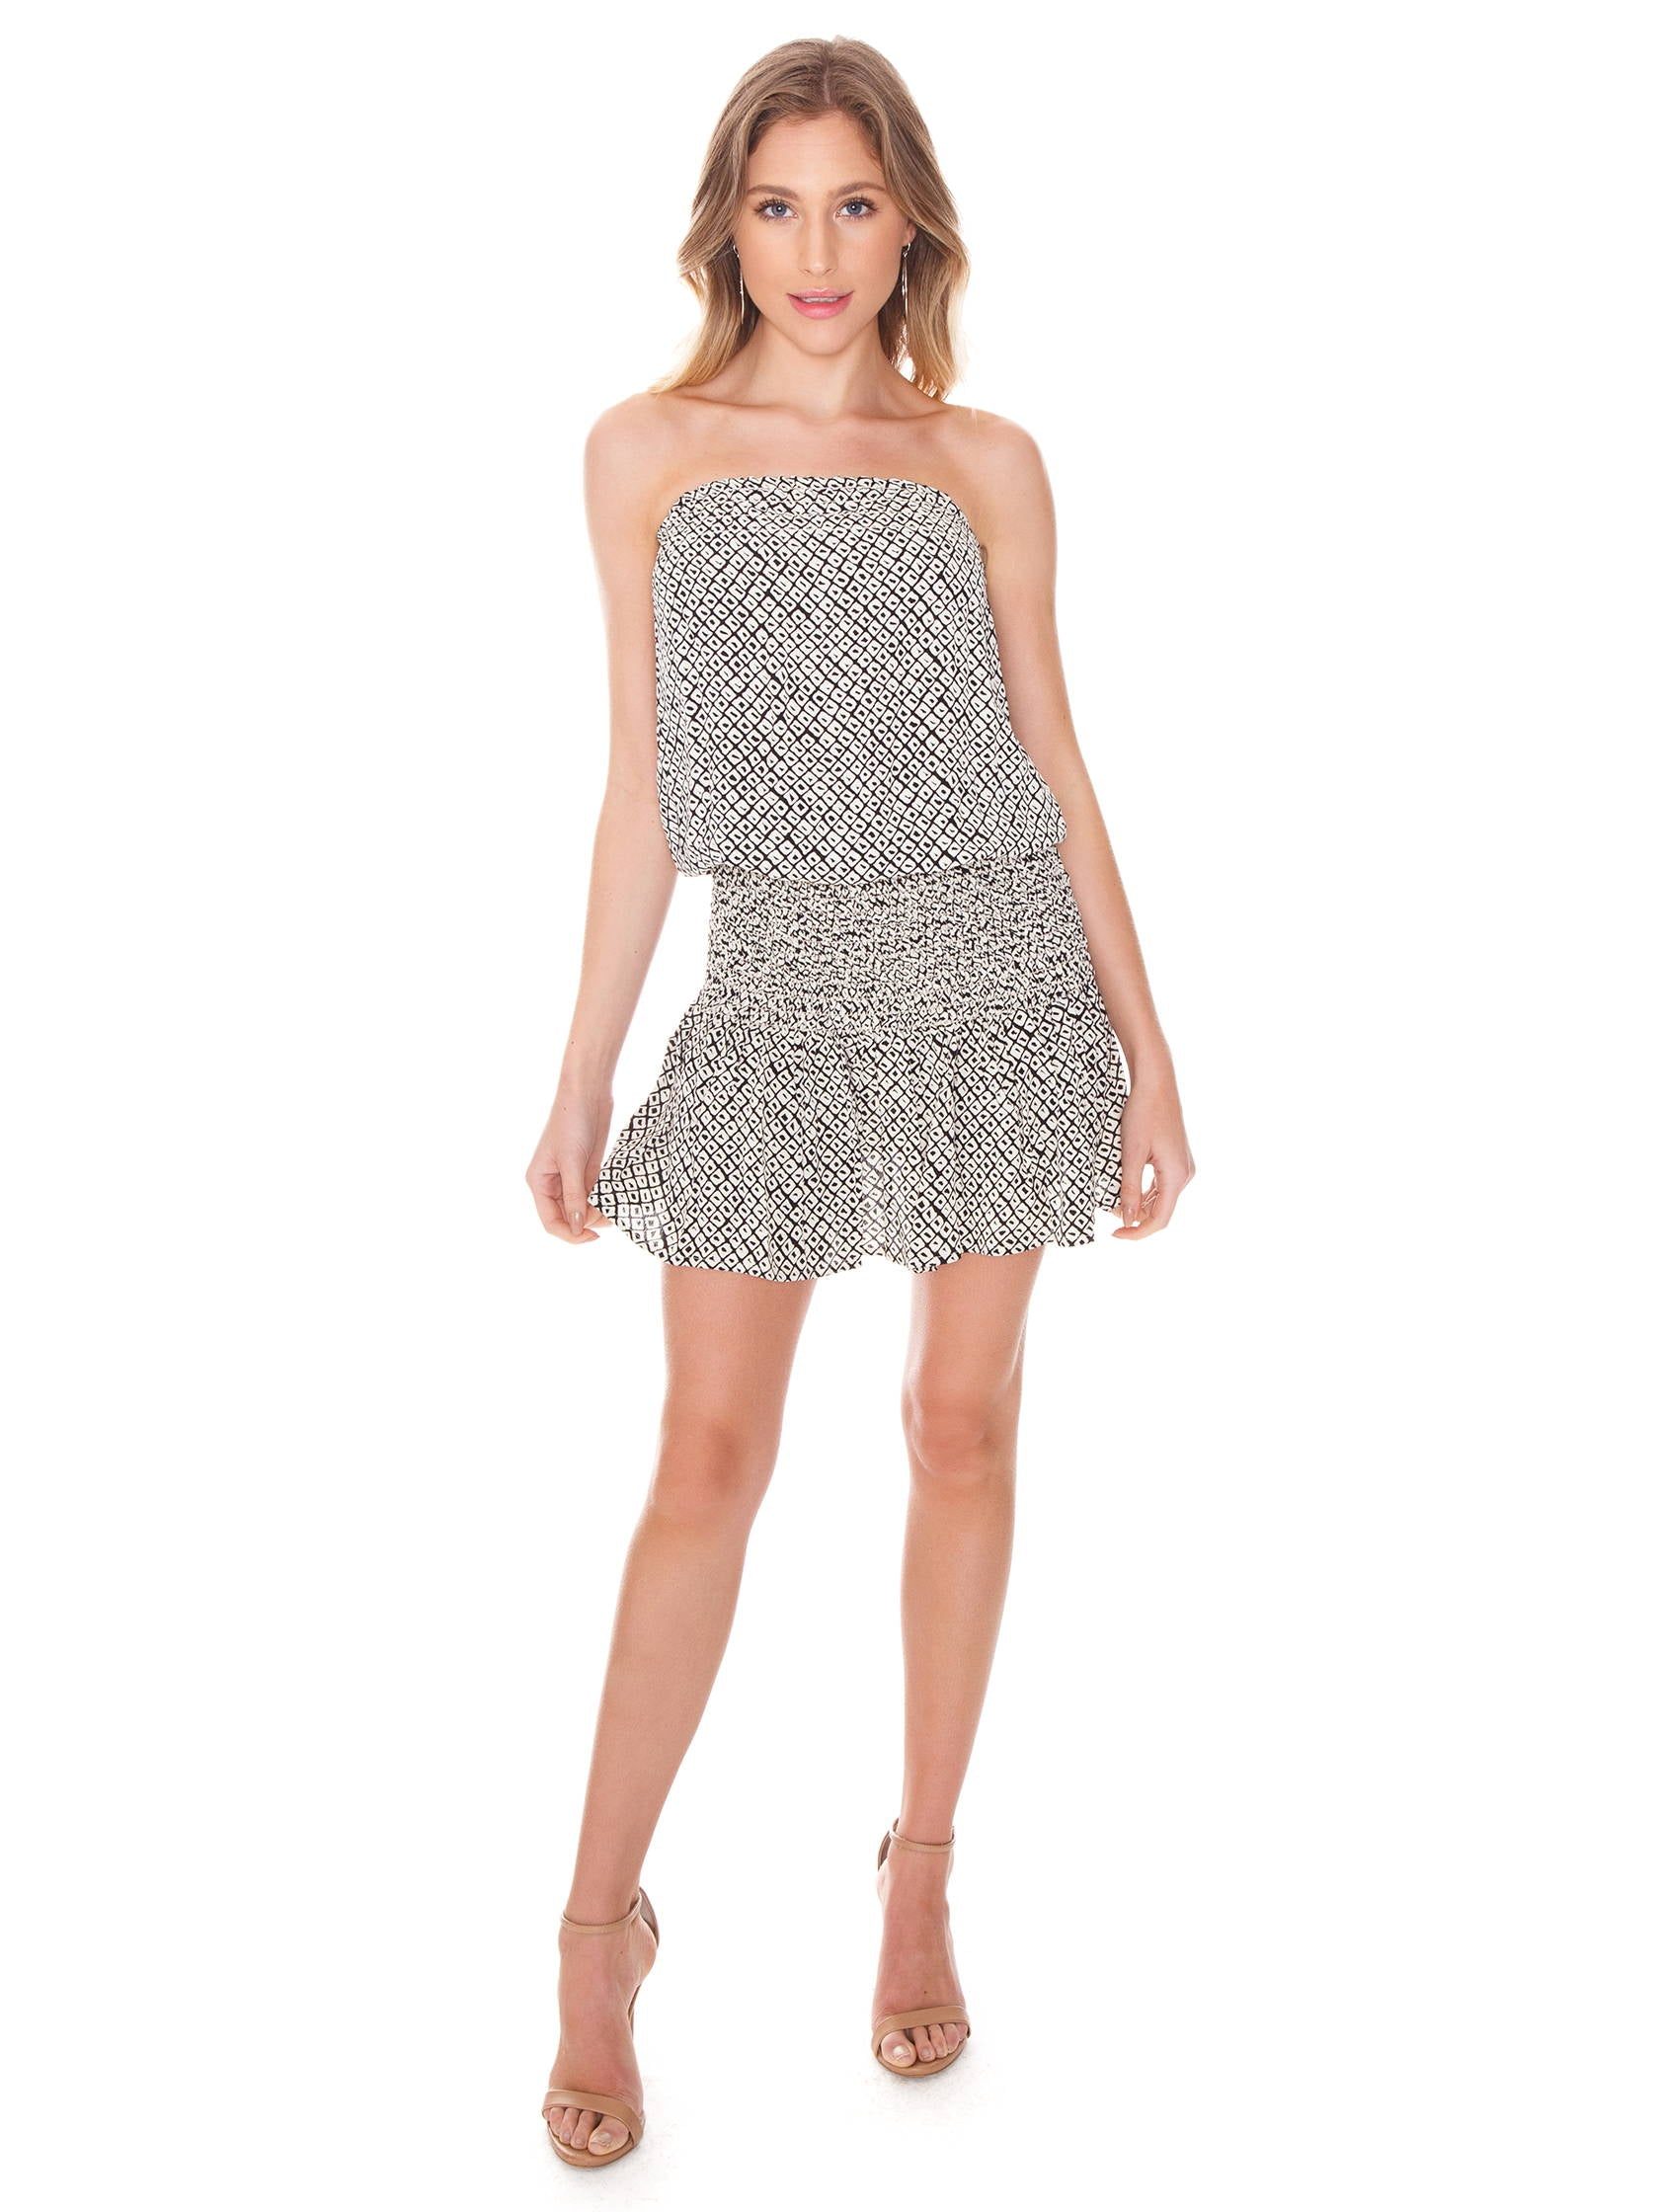 Women outfit in a dress rental from Blue Life called Good Karma Mini Dress